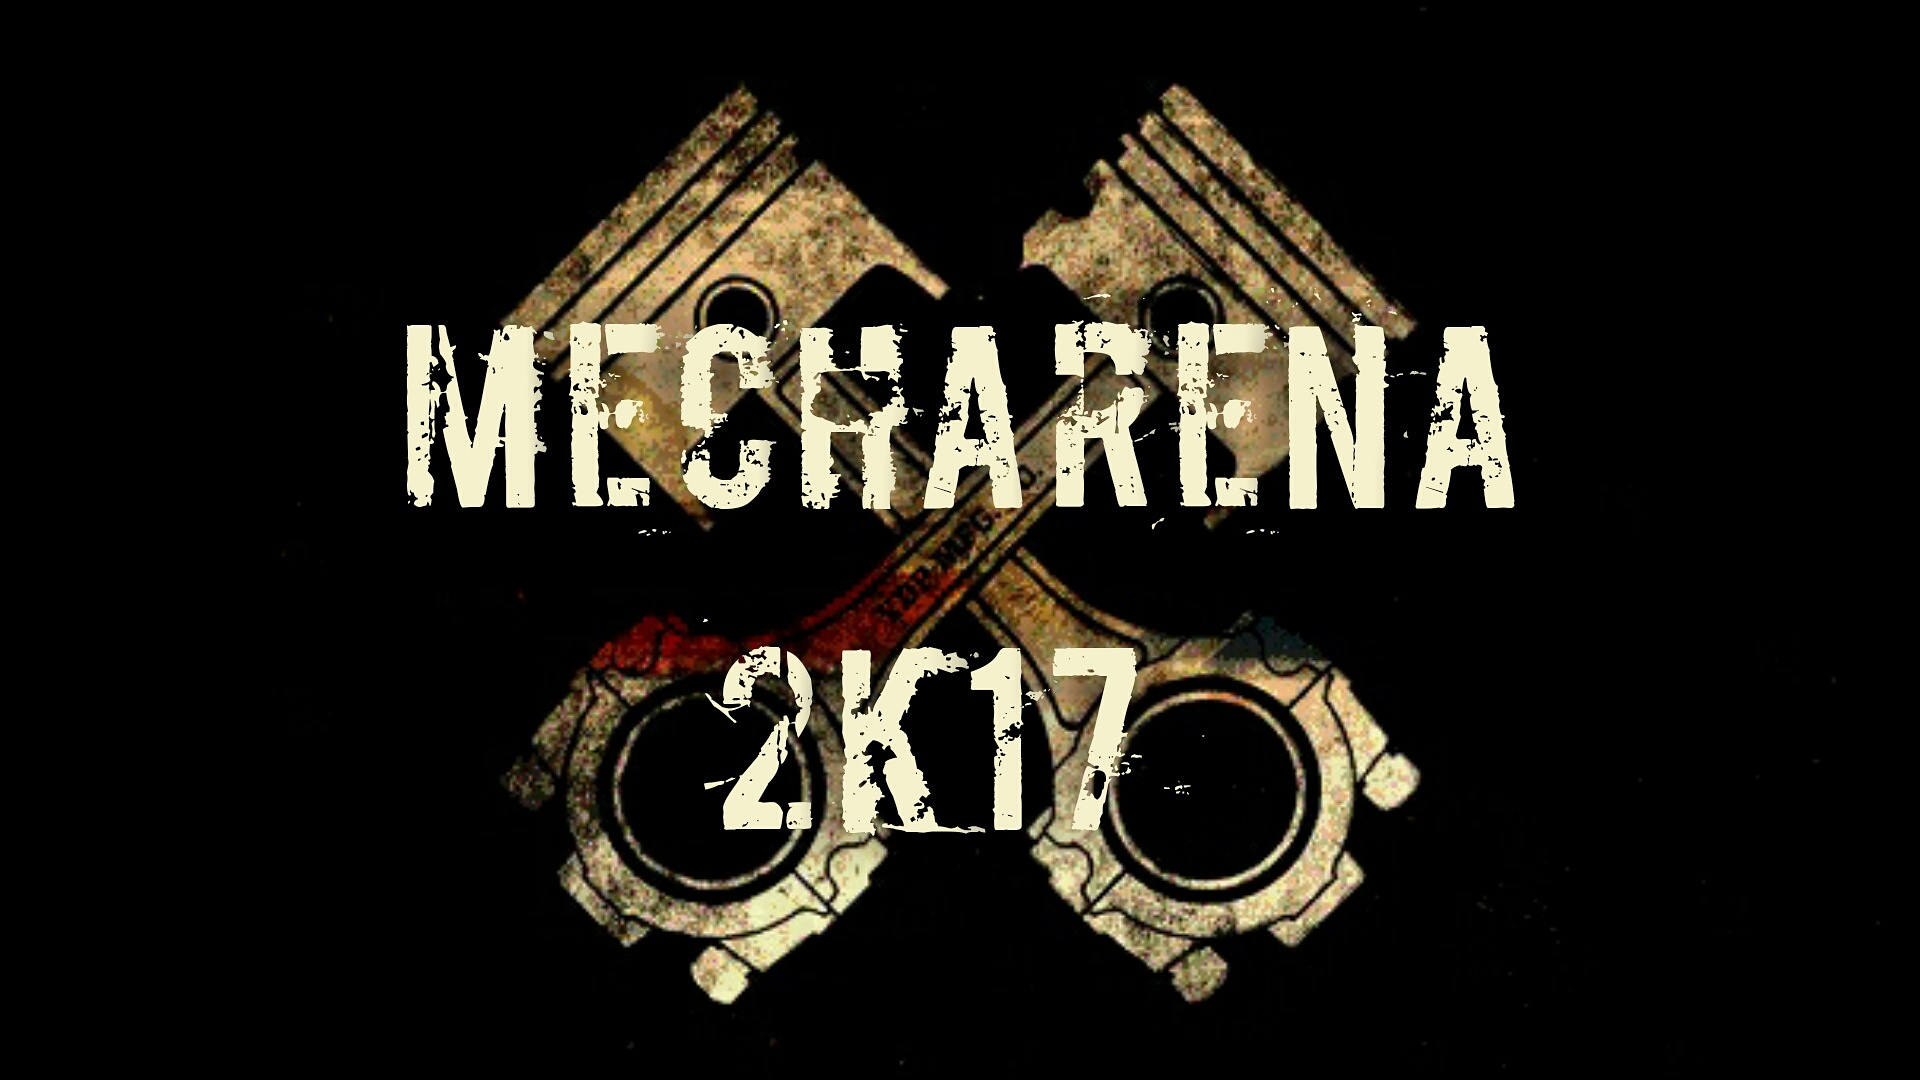 MECHARENA 2K17